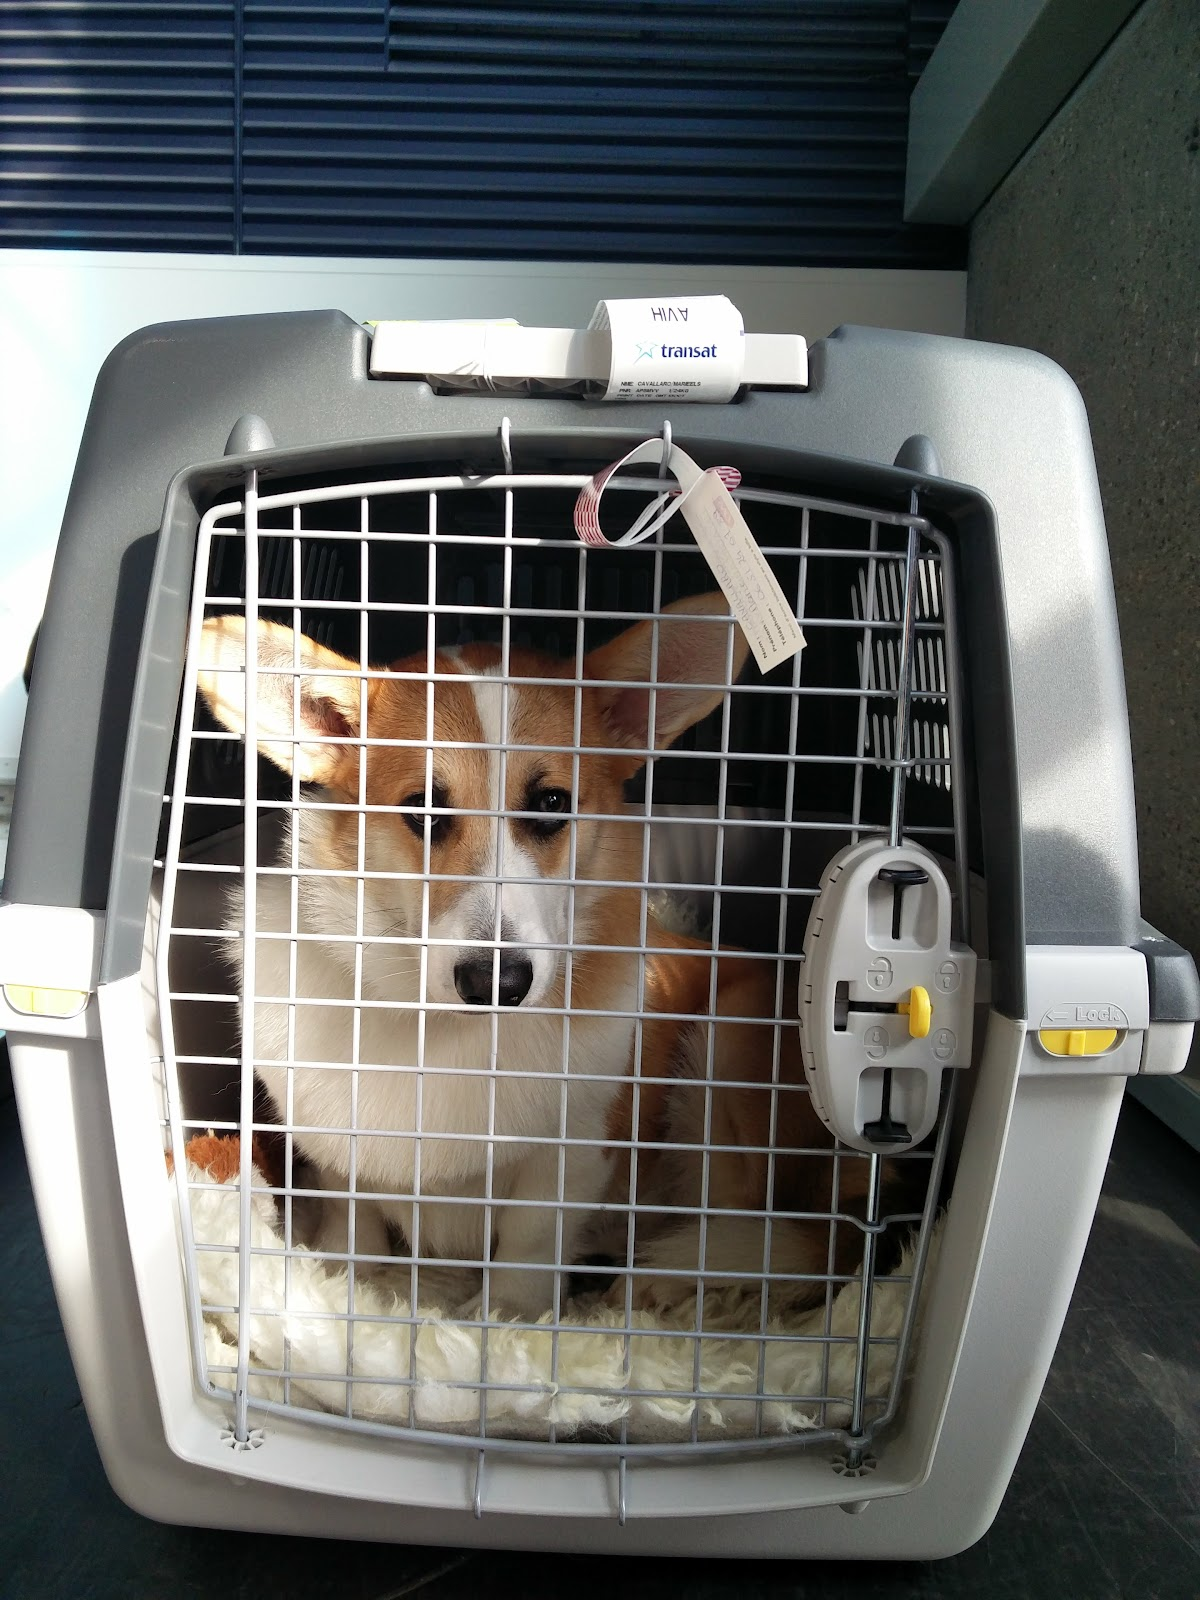 corgi in IATA transport cage with an air transat seal